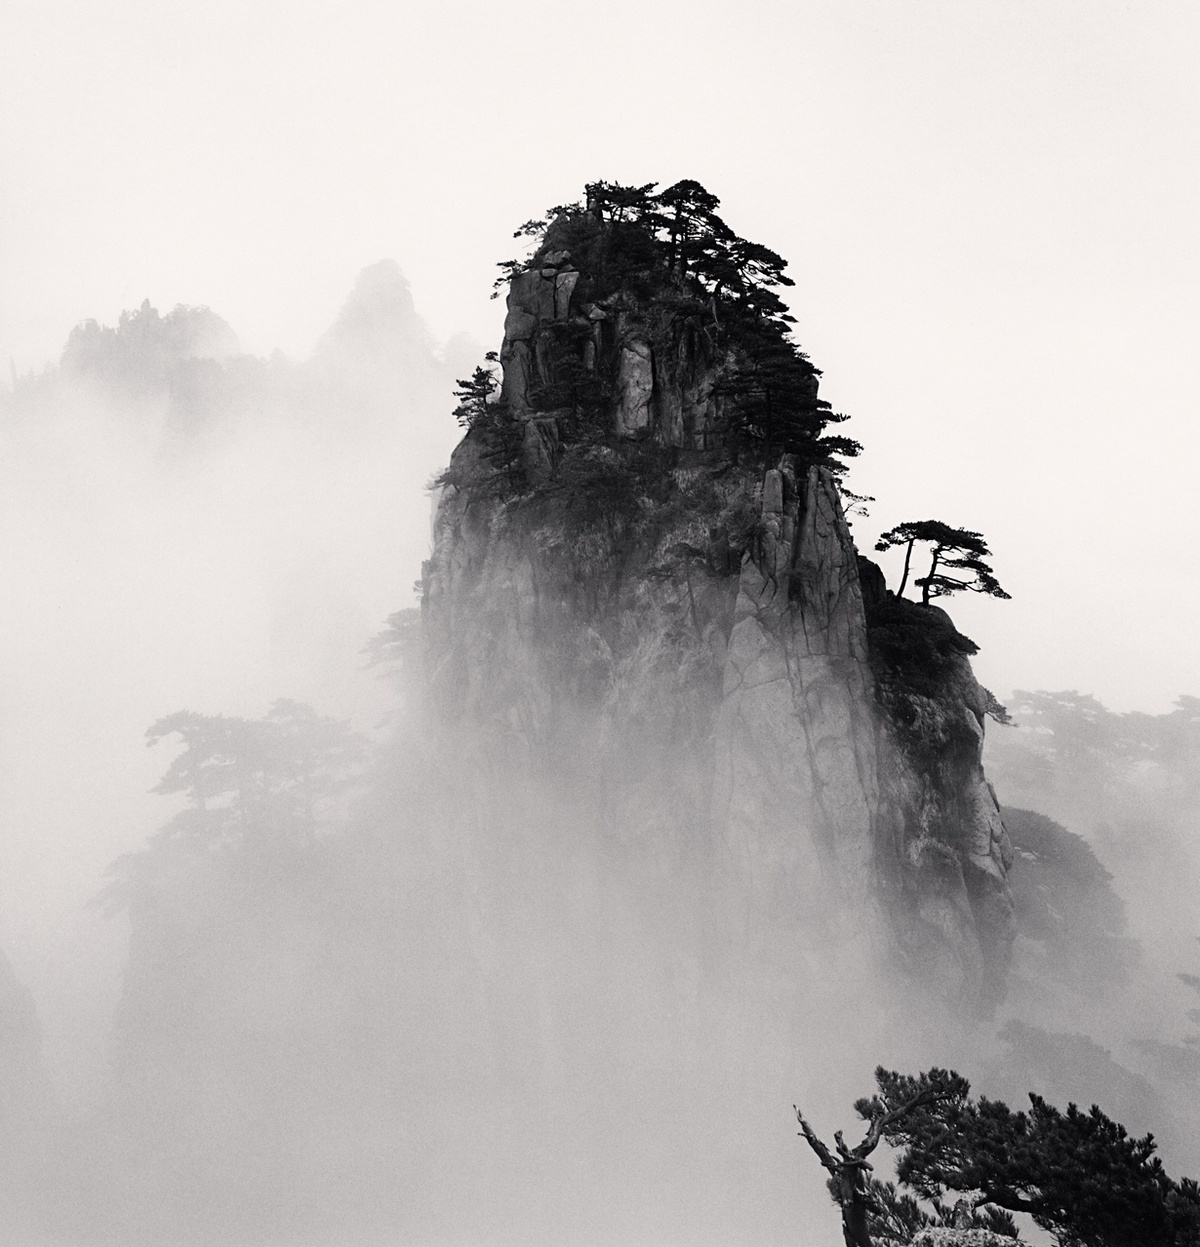 Michael Kenna Huangshan Mountains, Study 11, Anhui, China 2008 Sepia Toned Silver Gelatin Print From An Edition Of 45 8 x 8 Inches